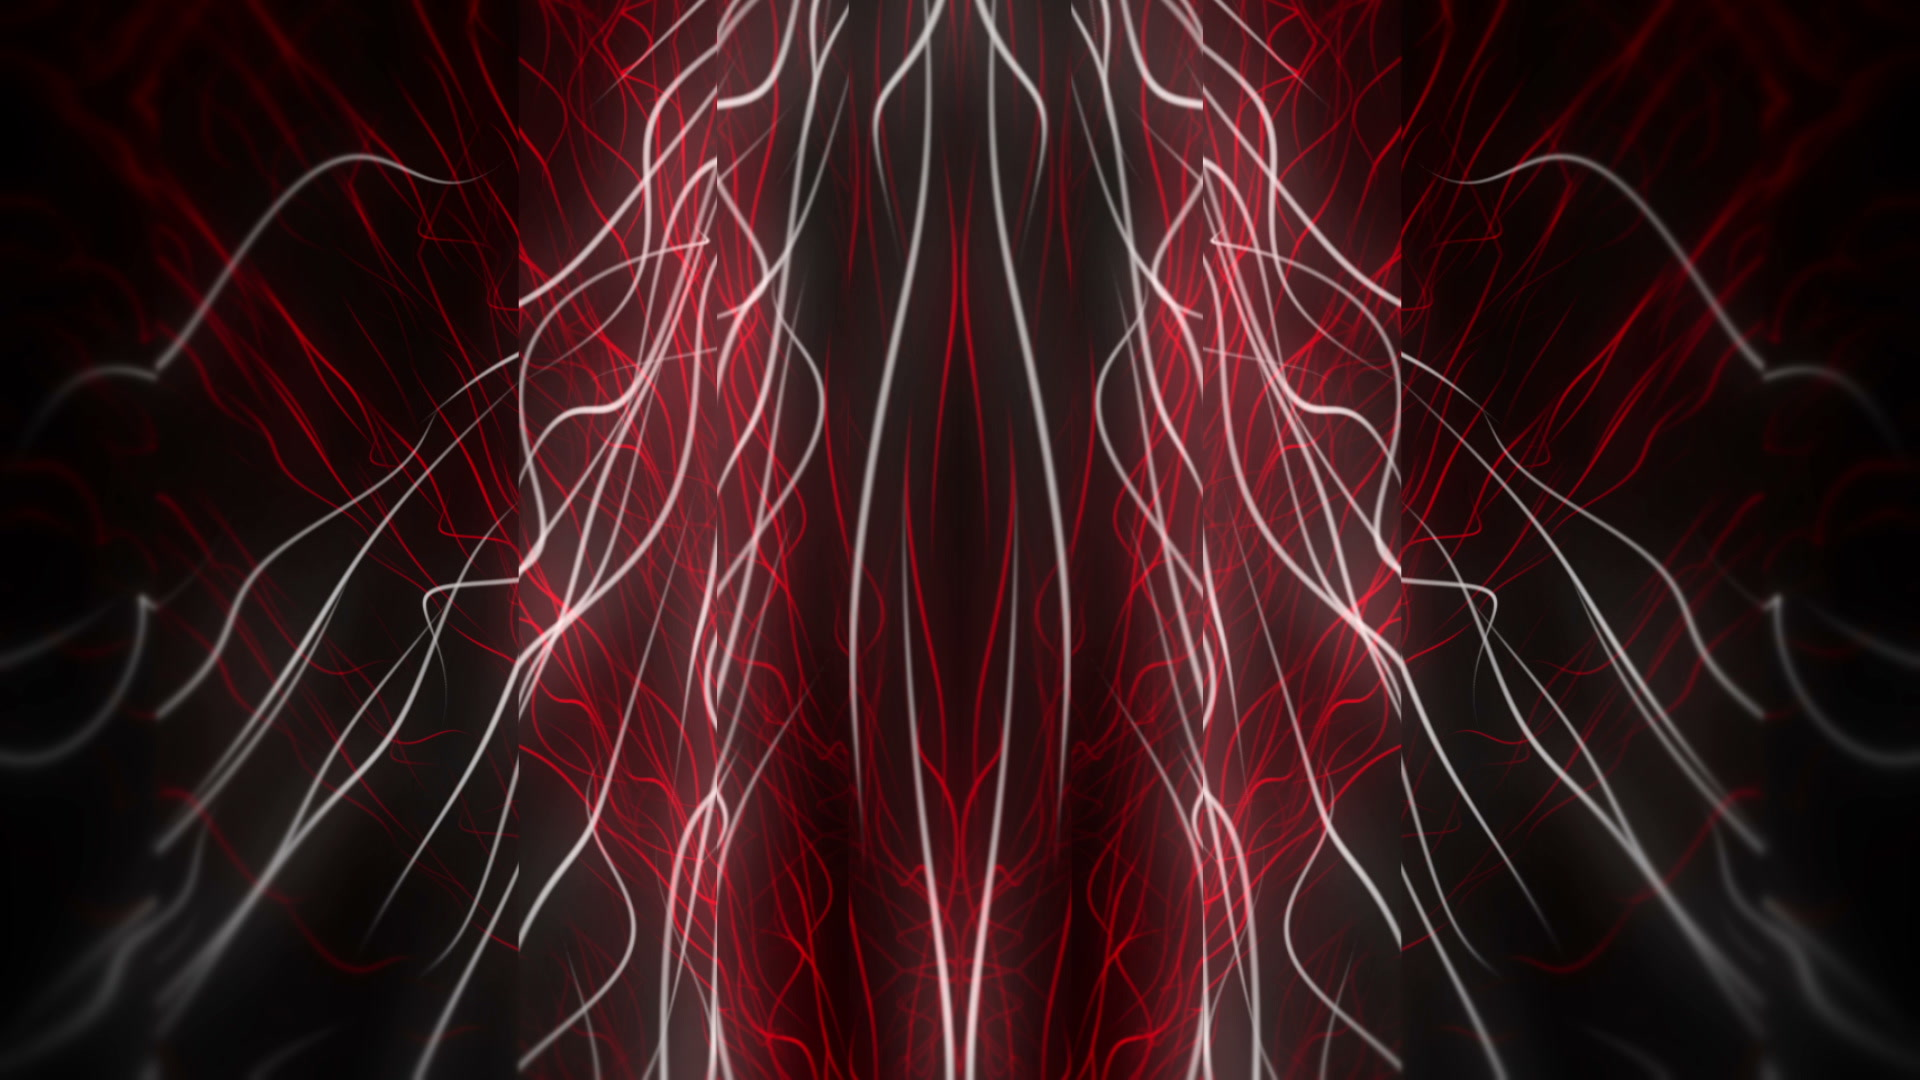 vj video background Red-White-Matrix-_1920x1080_60fps_VJLoop_LIMEART_003